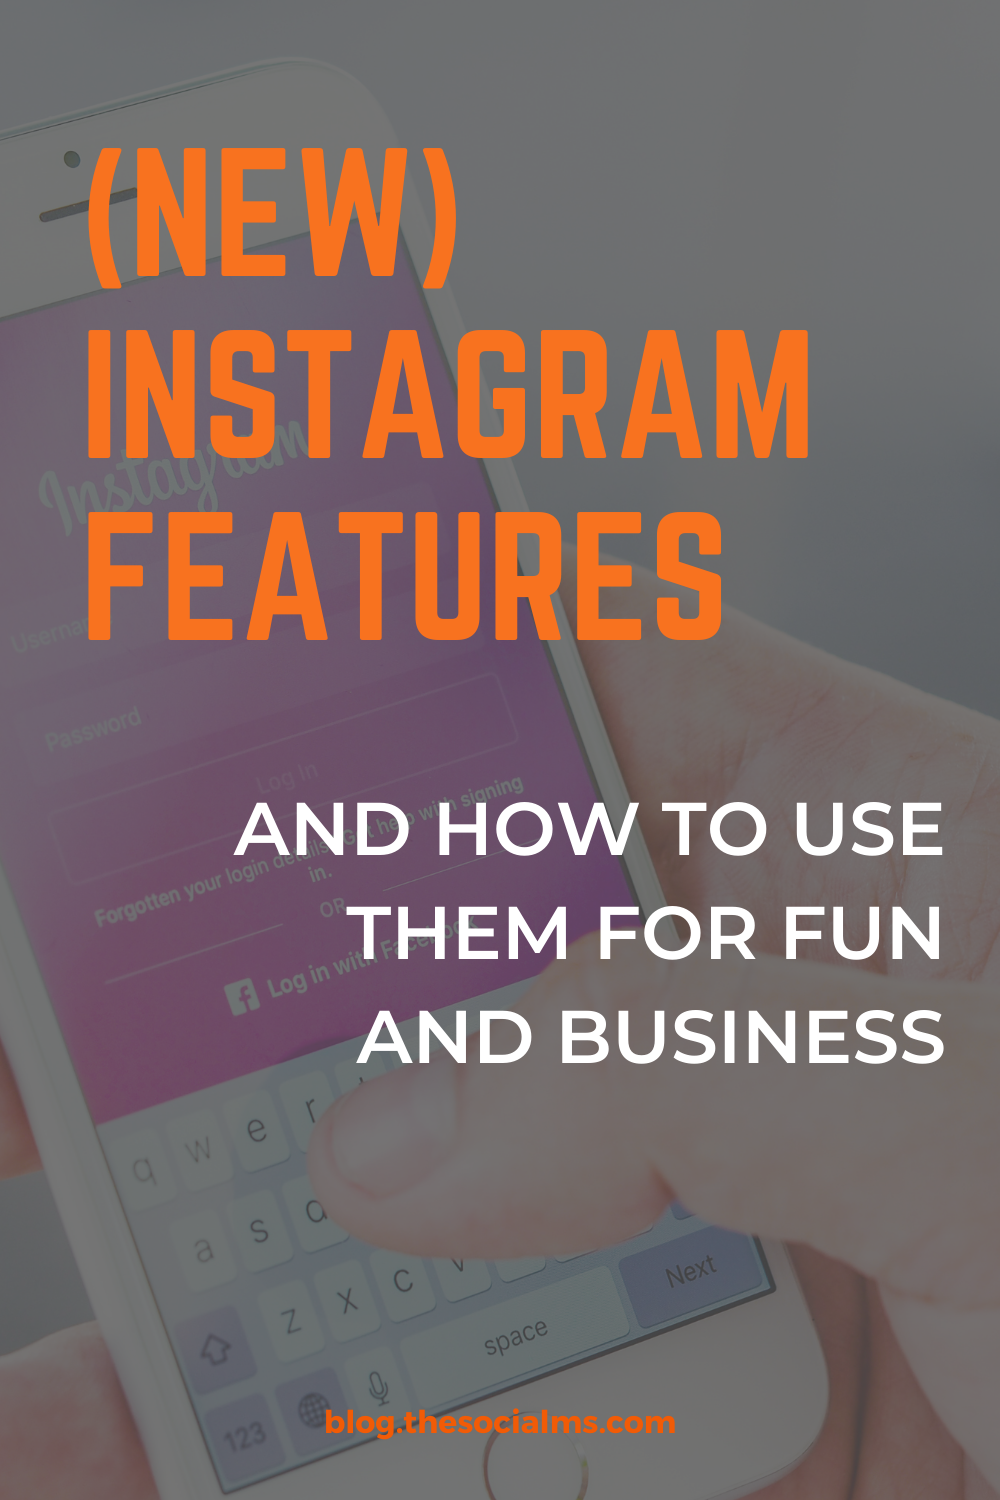 Instagram is releasing new features all the time. There are awesome instagram features that you are probably not using yet. Here are the best Instagram features that you need to use for your Instagram account. Reach a larger Instagram audience with these new features. #instagram #instagramfeatures #instagramtips #instagrammarketing #instagramtips #instagramstrategy #instagramhacks #instagrambestpractices.